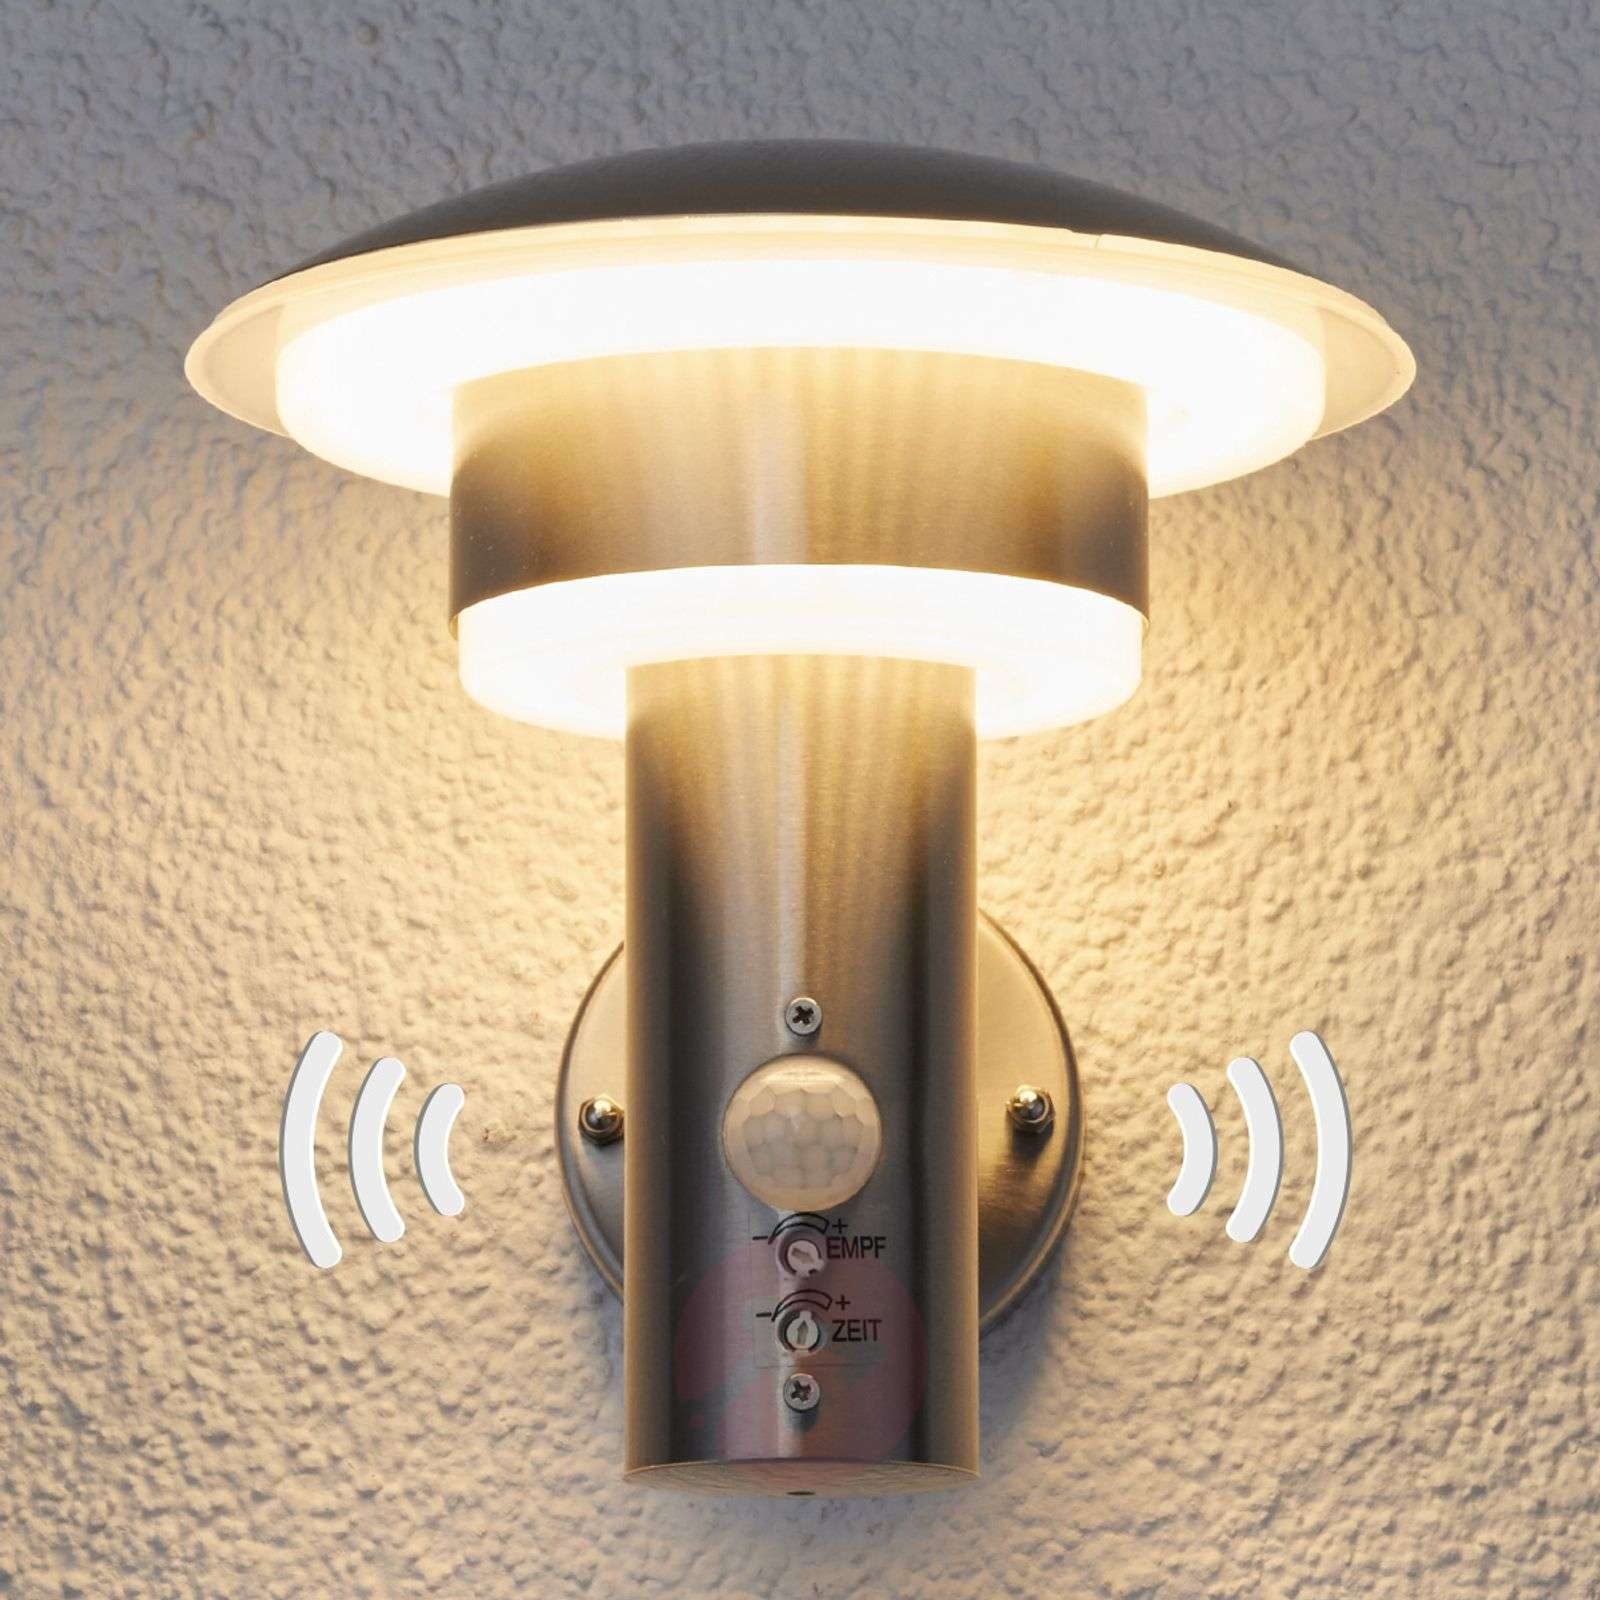 Pir outdoor wall light lillie with leds lights pir outdoor wall light lillie with leds 9988018 01 mozeypictures